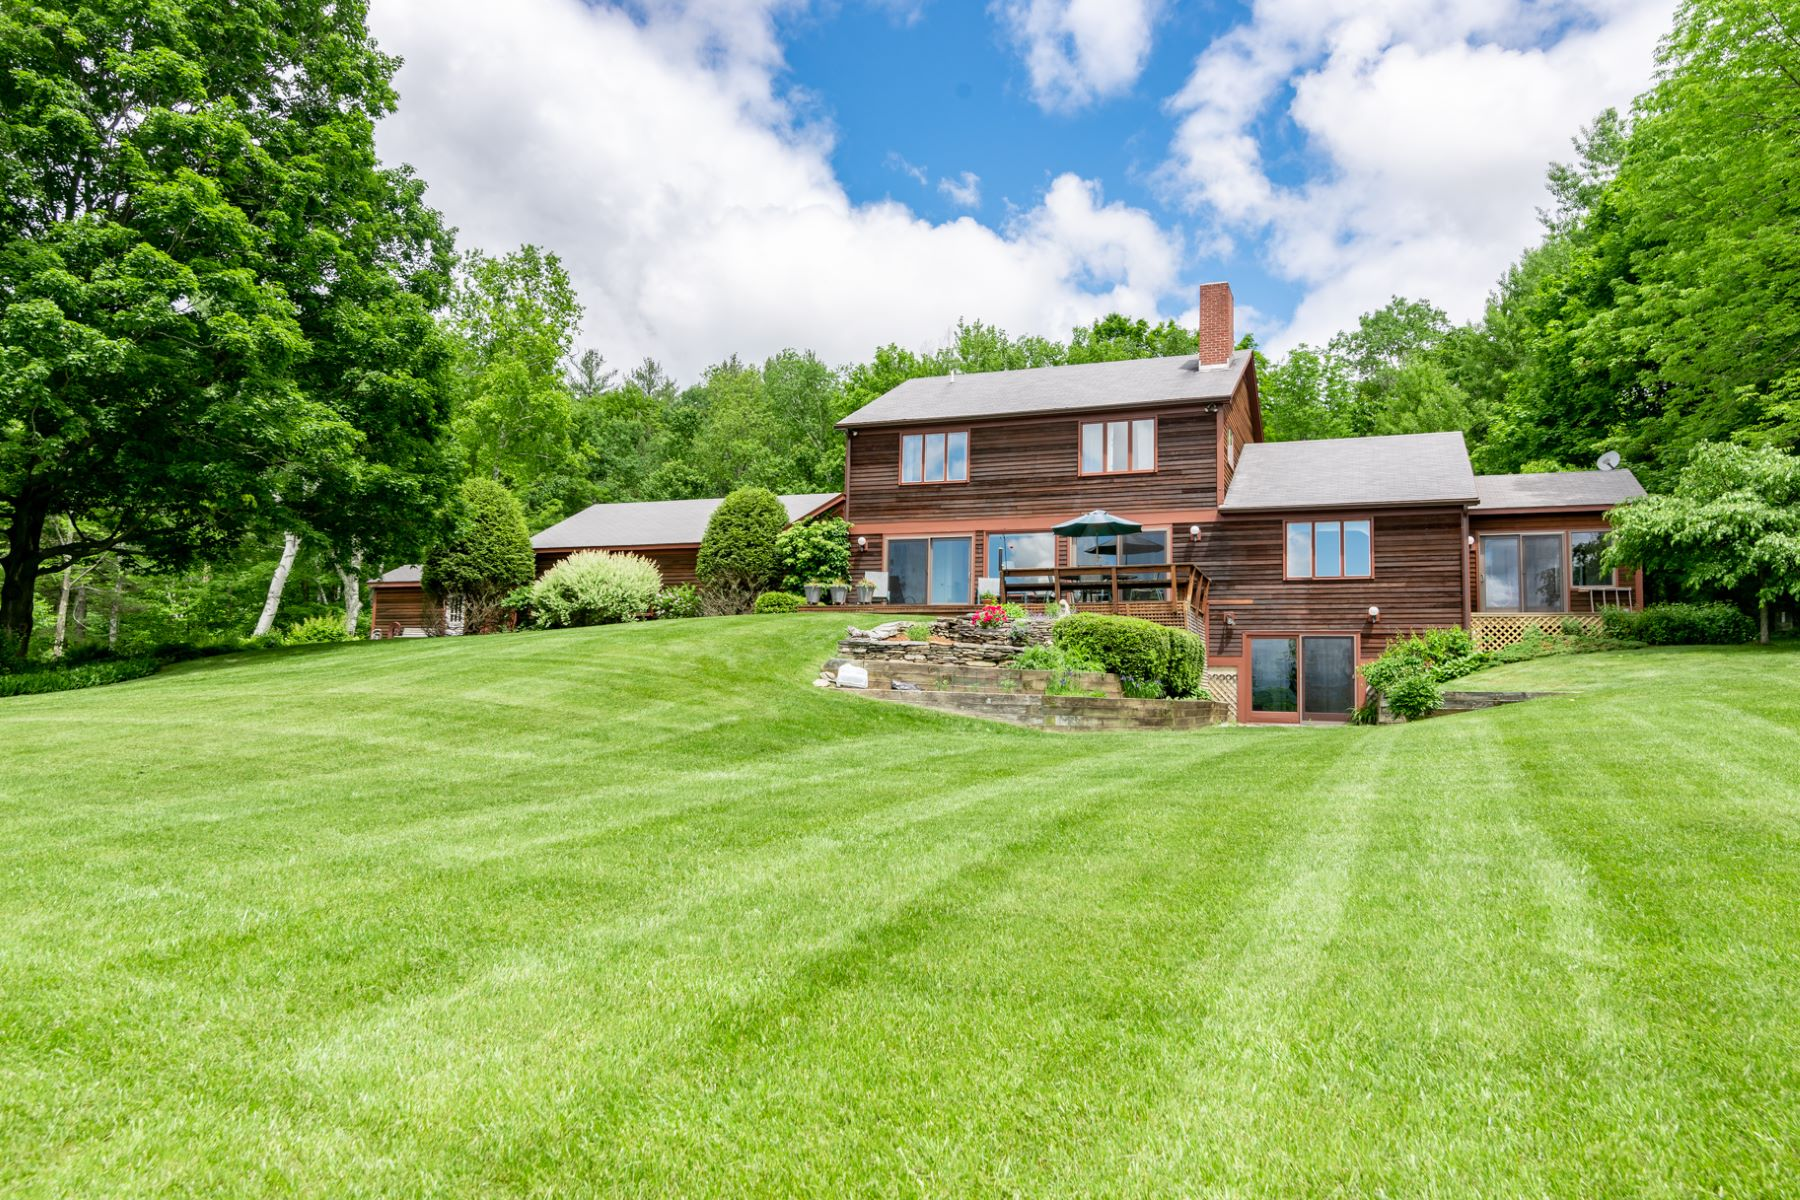 Single Family Homes for Sale at Views That Reach to Massachusetts! 133 Pine Rd Dorset, Vermont 05251 United States